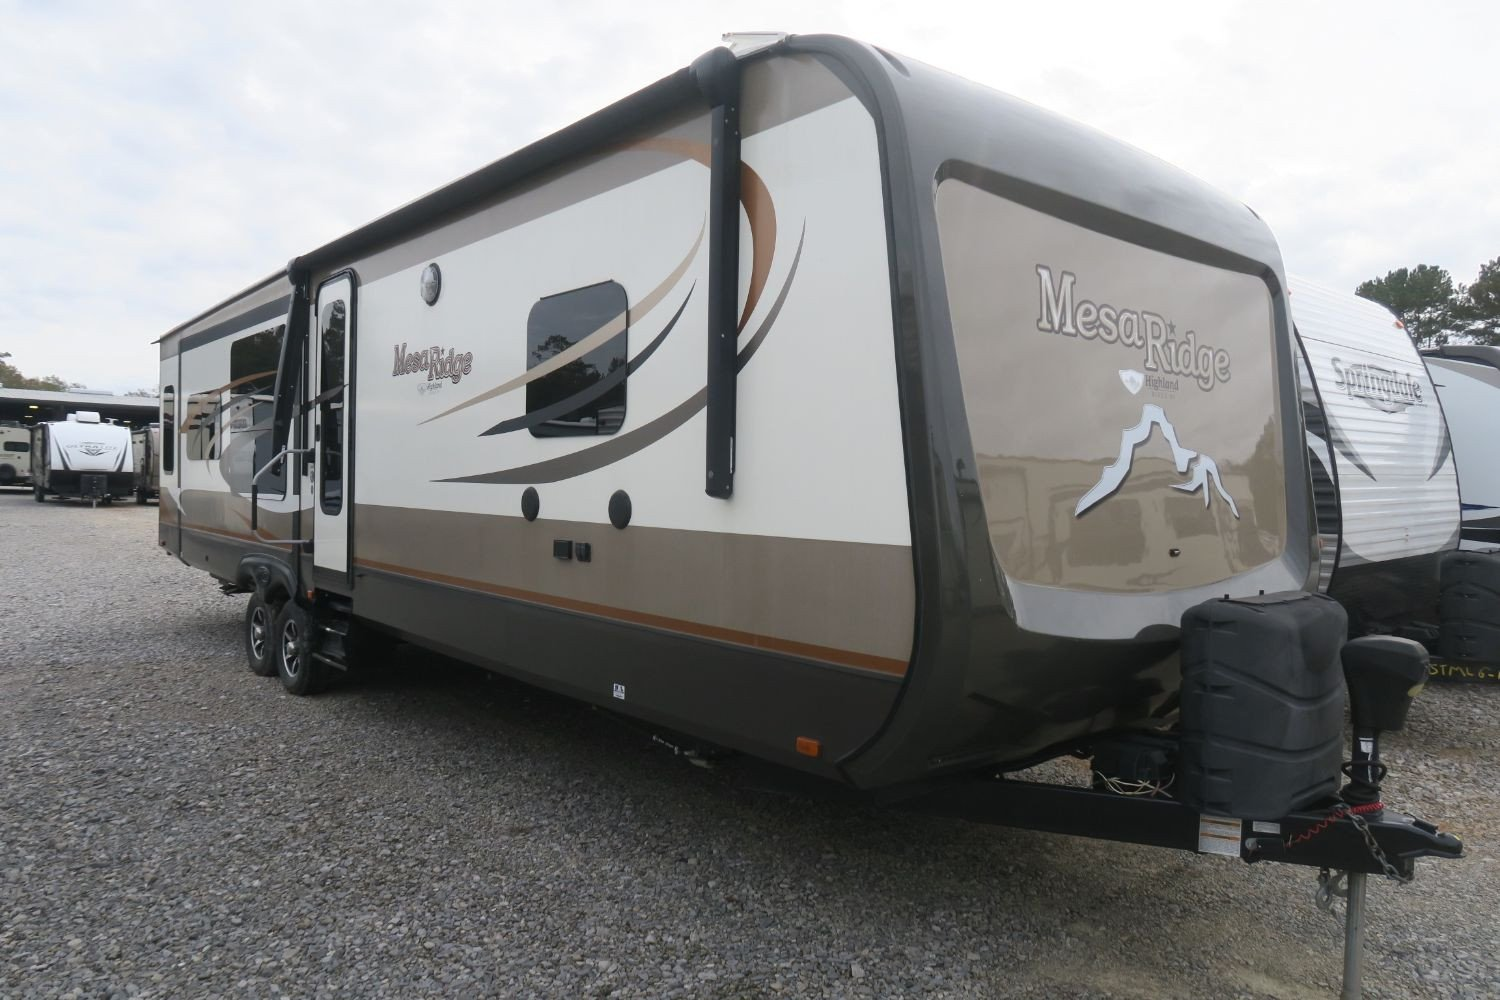 USED 2017 MESA RIDGE ROAMER 323RLS  Overview  Berryland